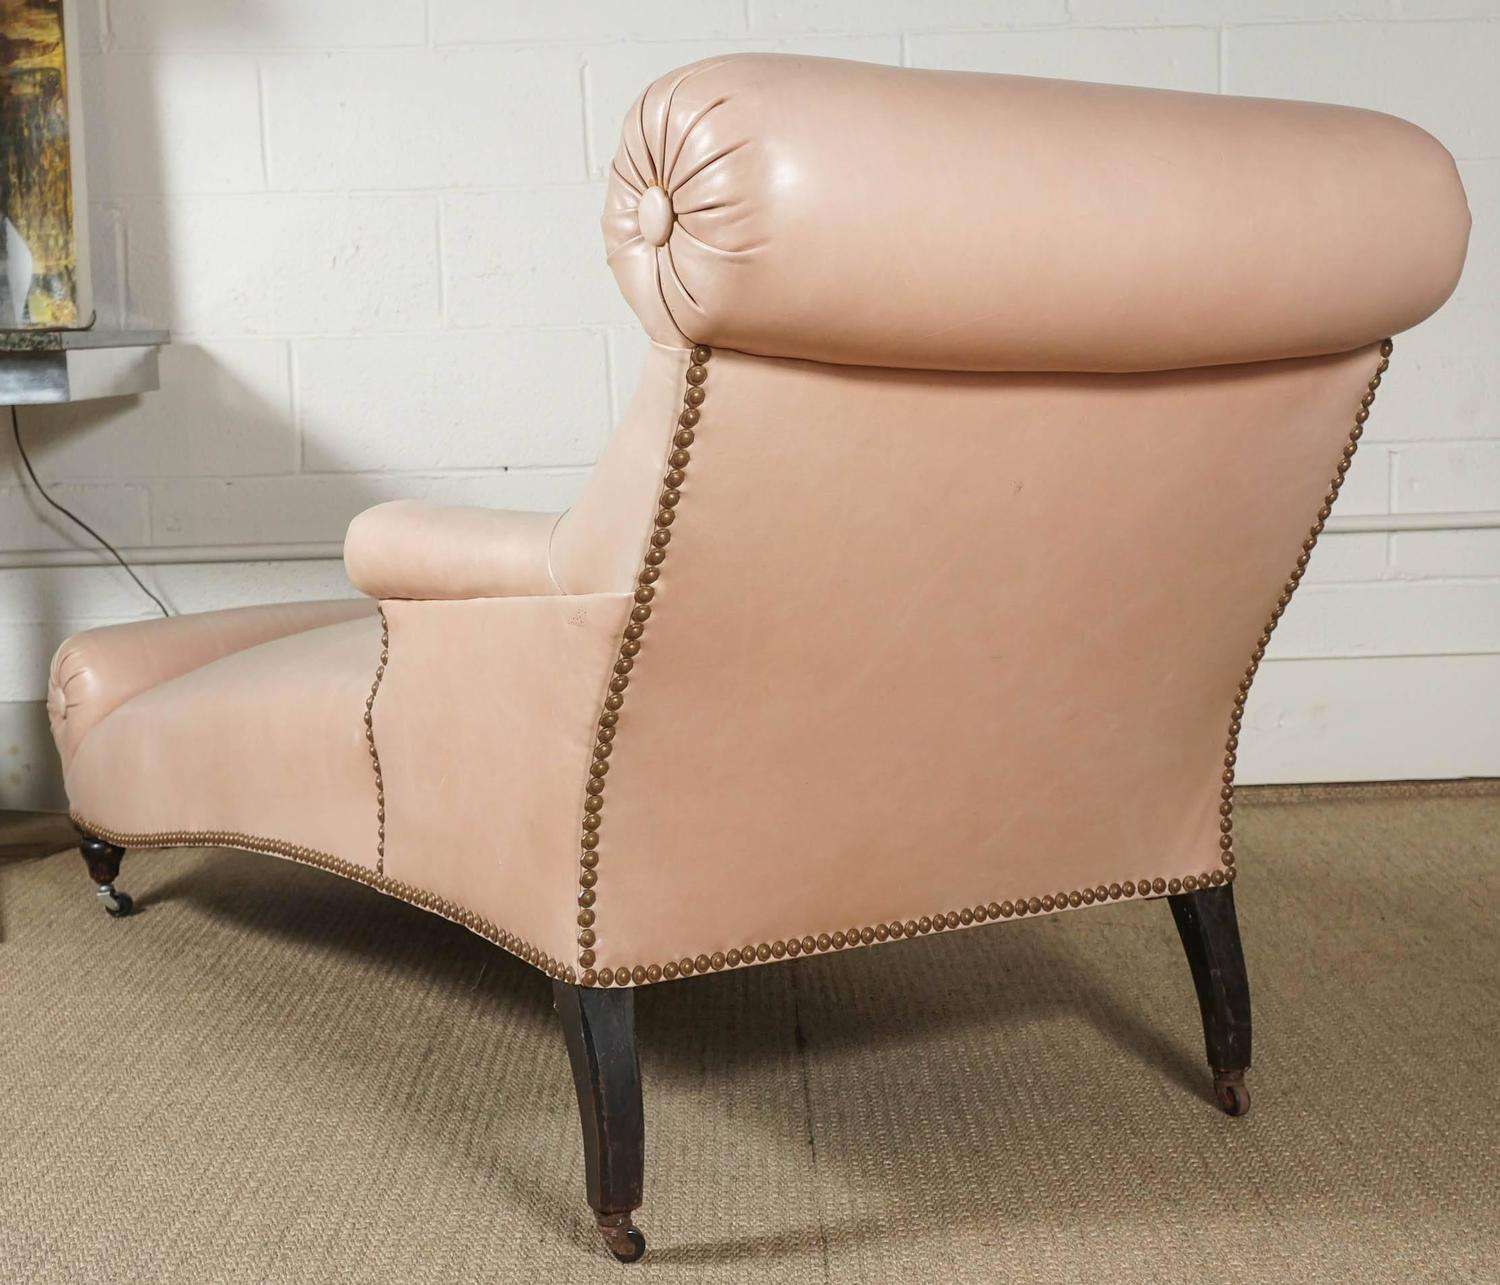 napoleon iii double bolster chaise for sale at 1stdibs. Black Bedroom Furniture Sets. Home Design Ideas